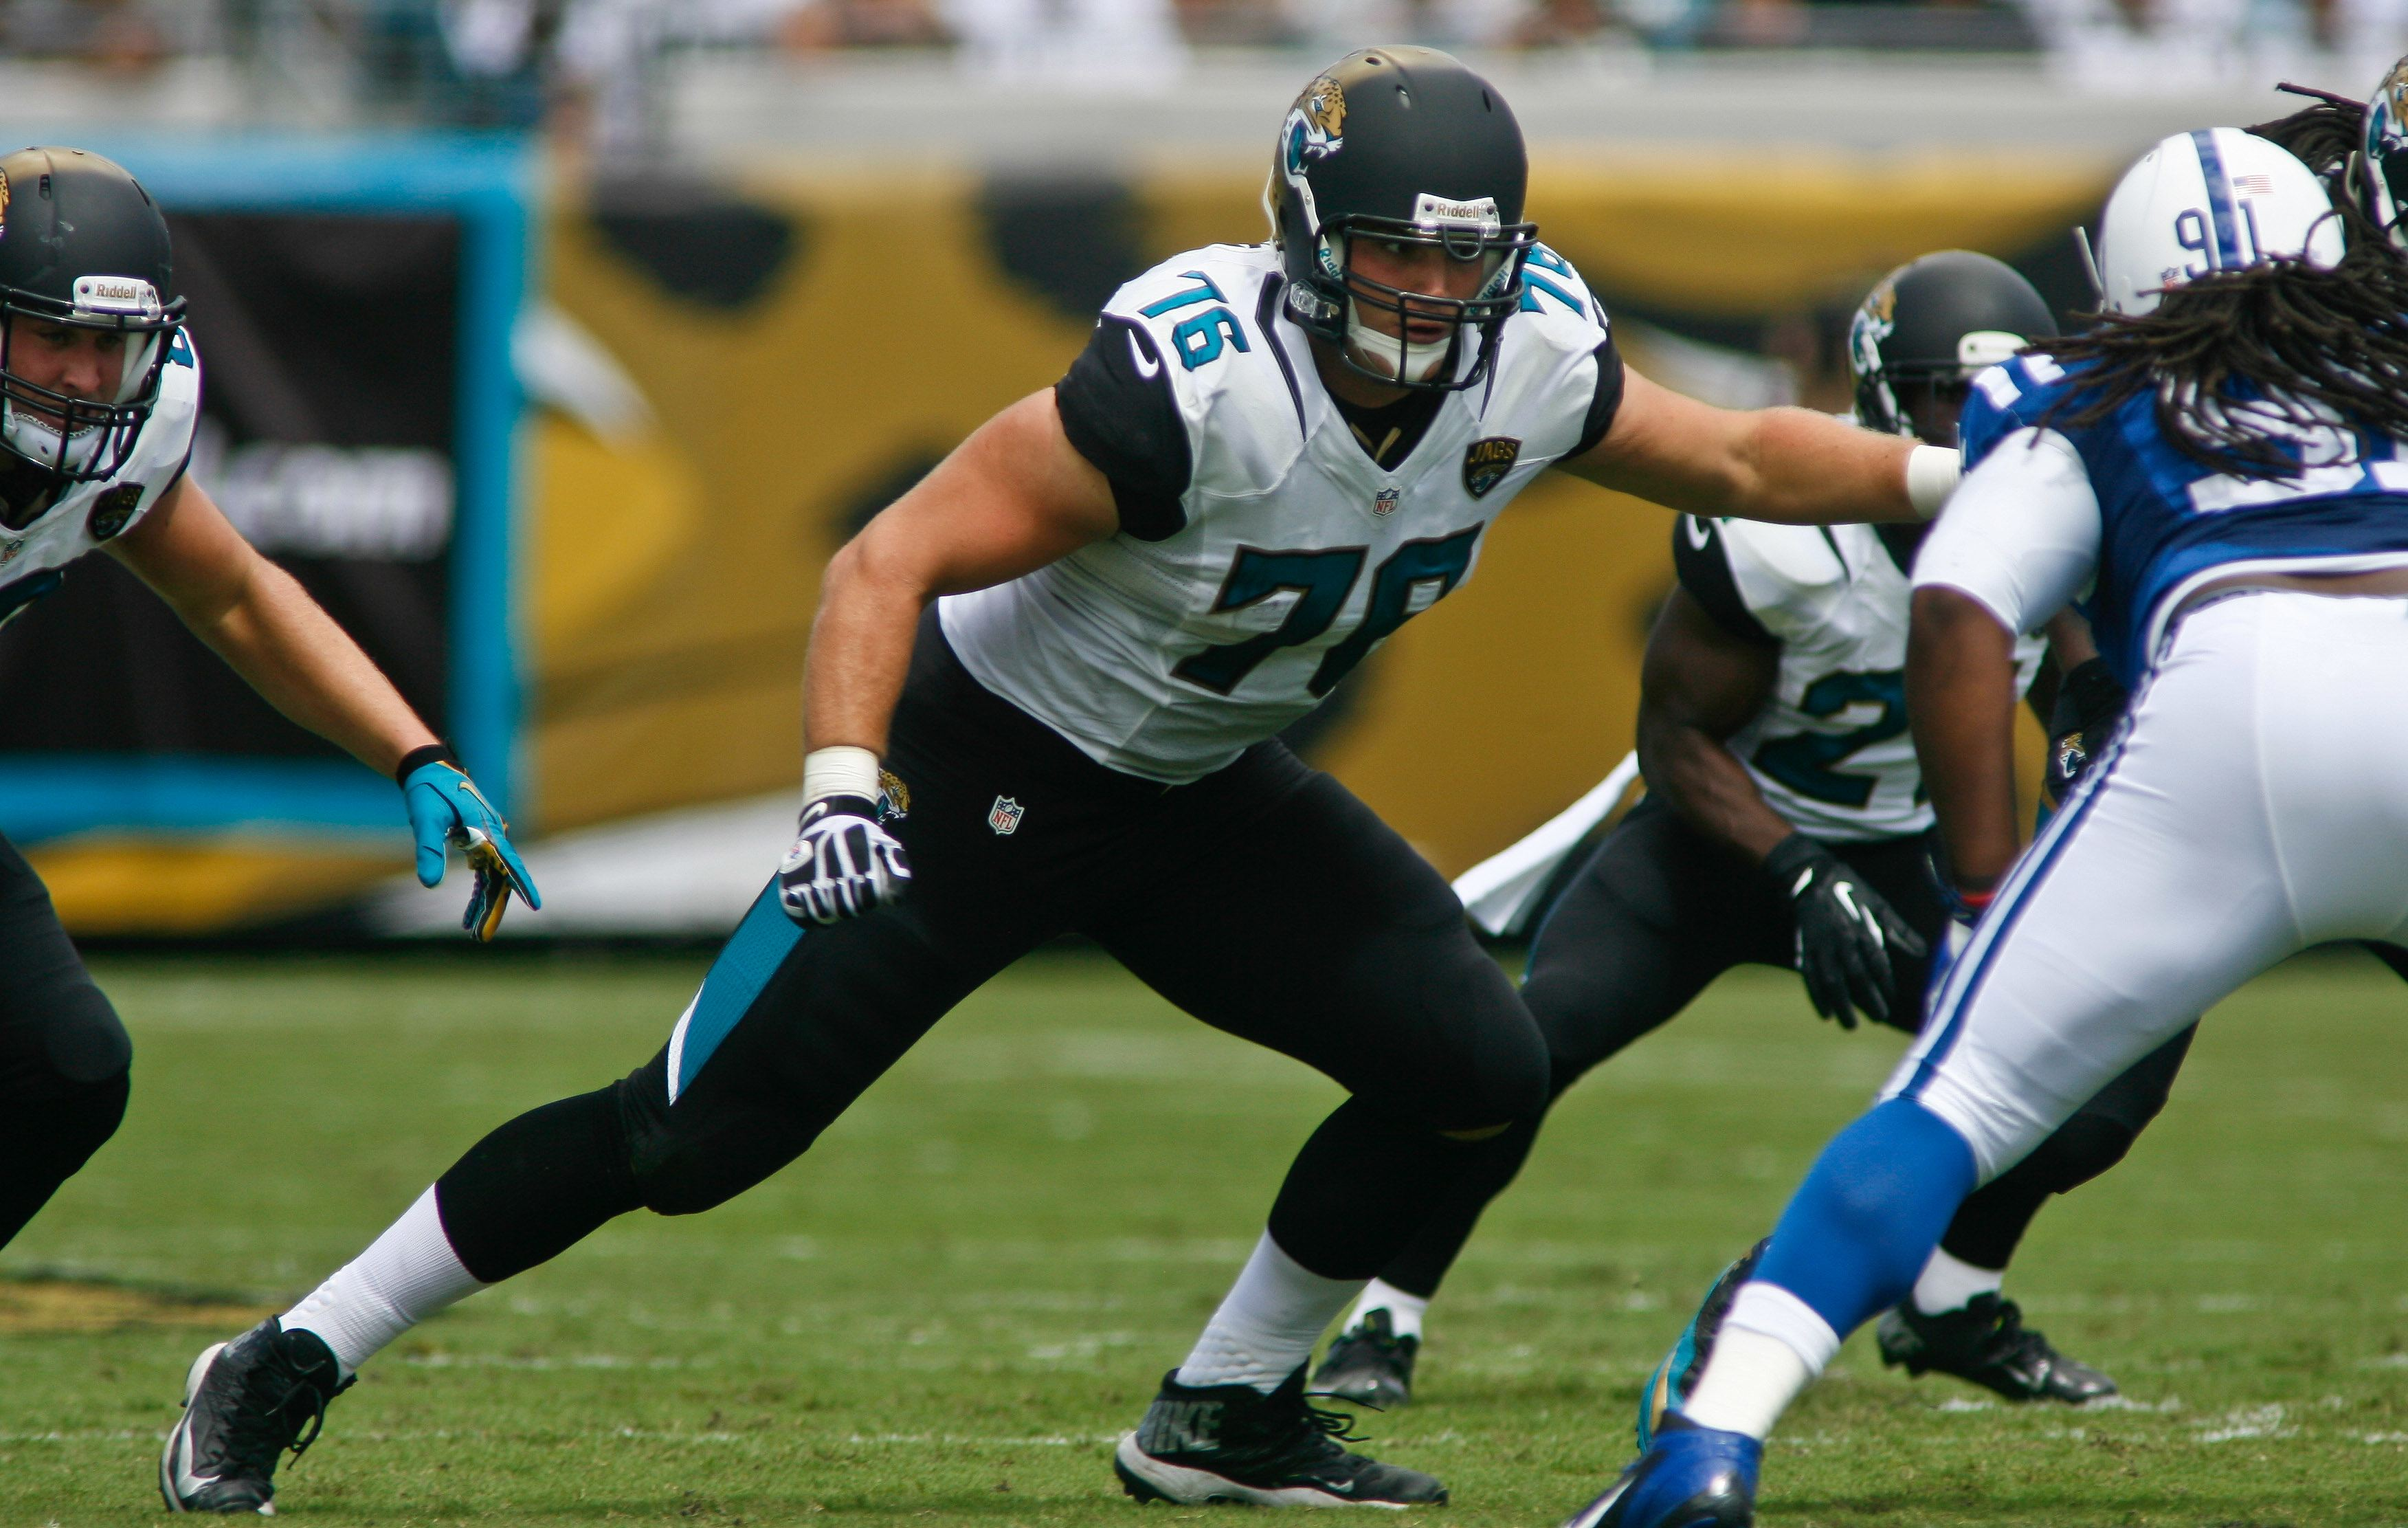 Cowboys Free Agency: OL Luke Joeckel Brings Low Risk, High Reward